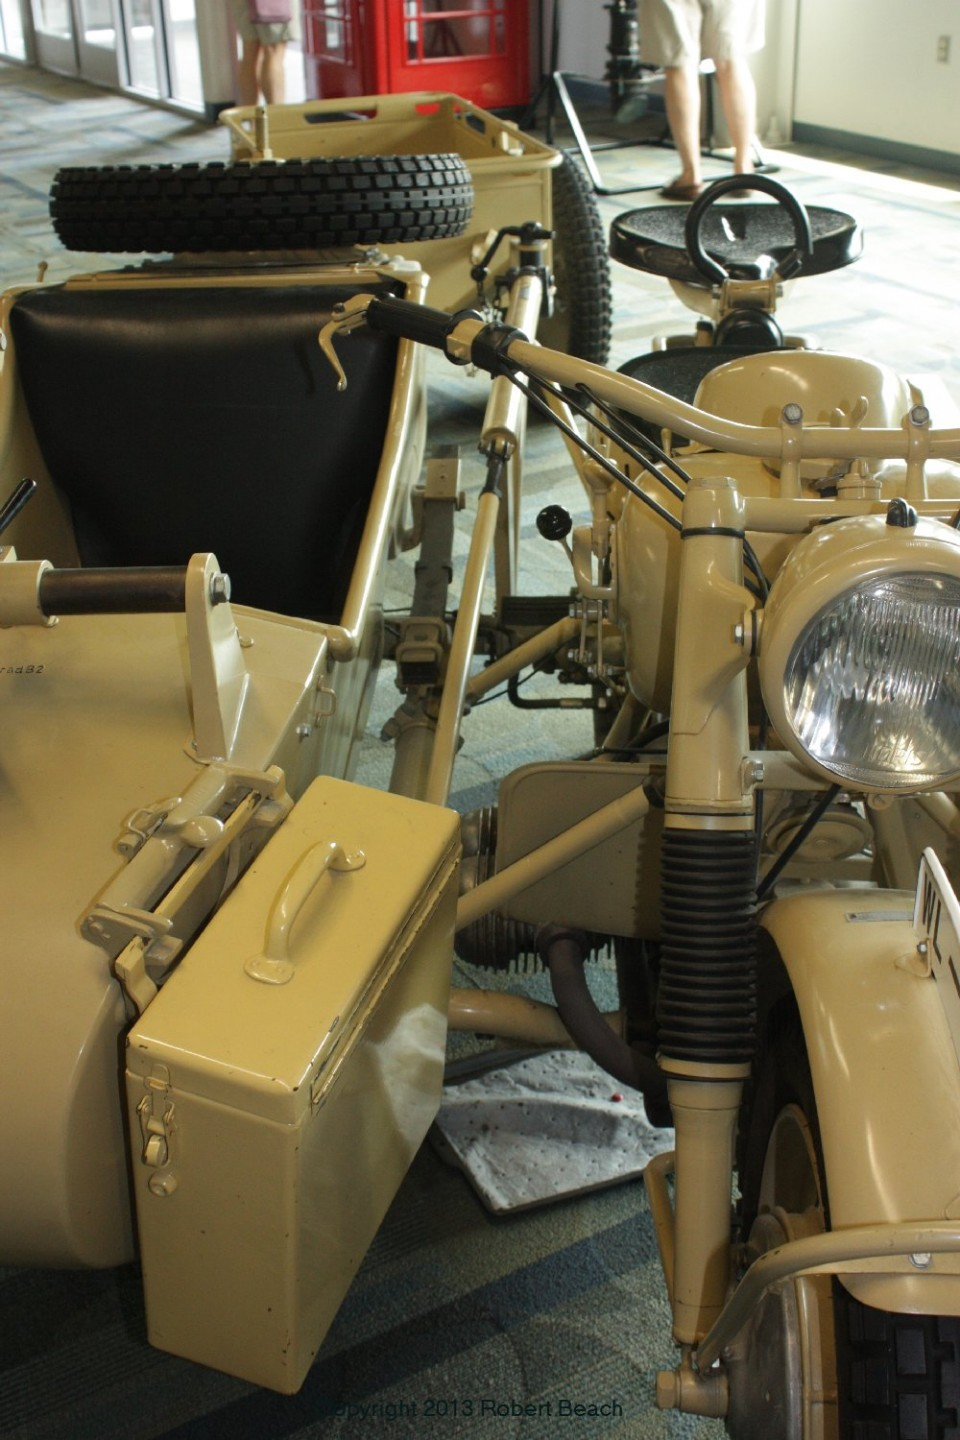 BMW_Mtrcycle_sidecar_cntr sect_frm frnt